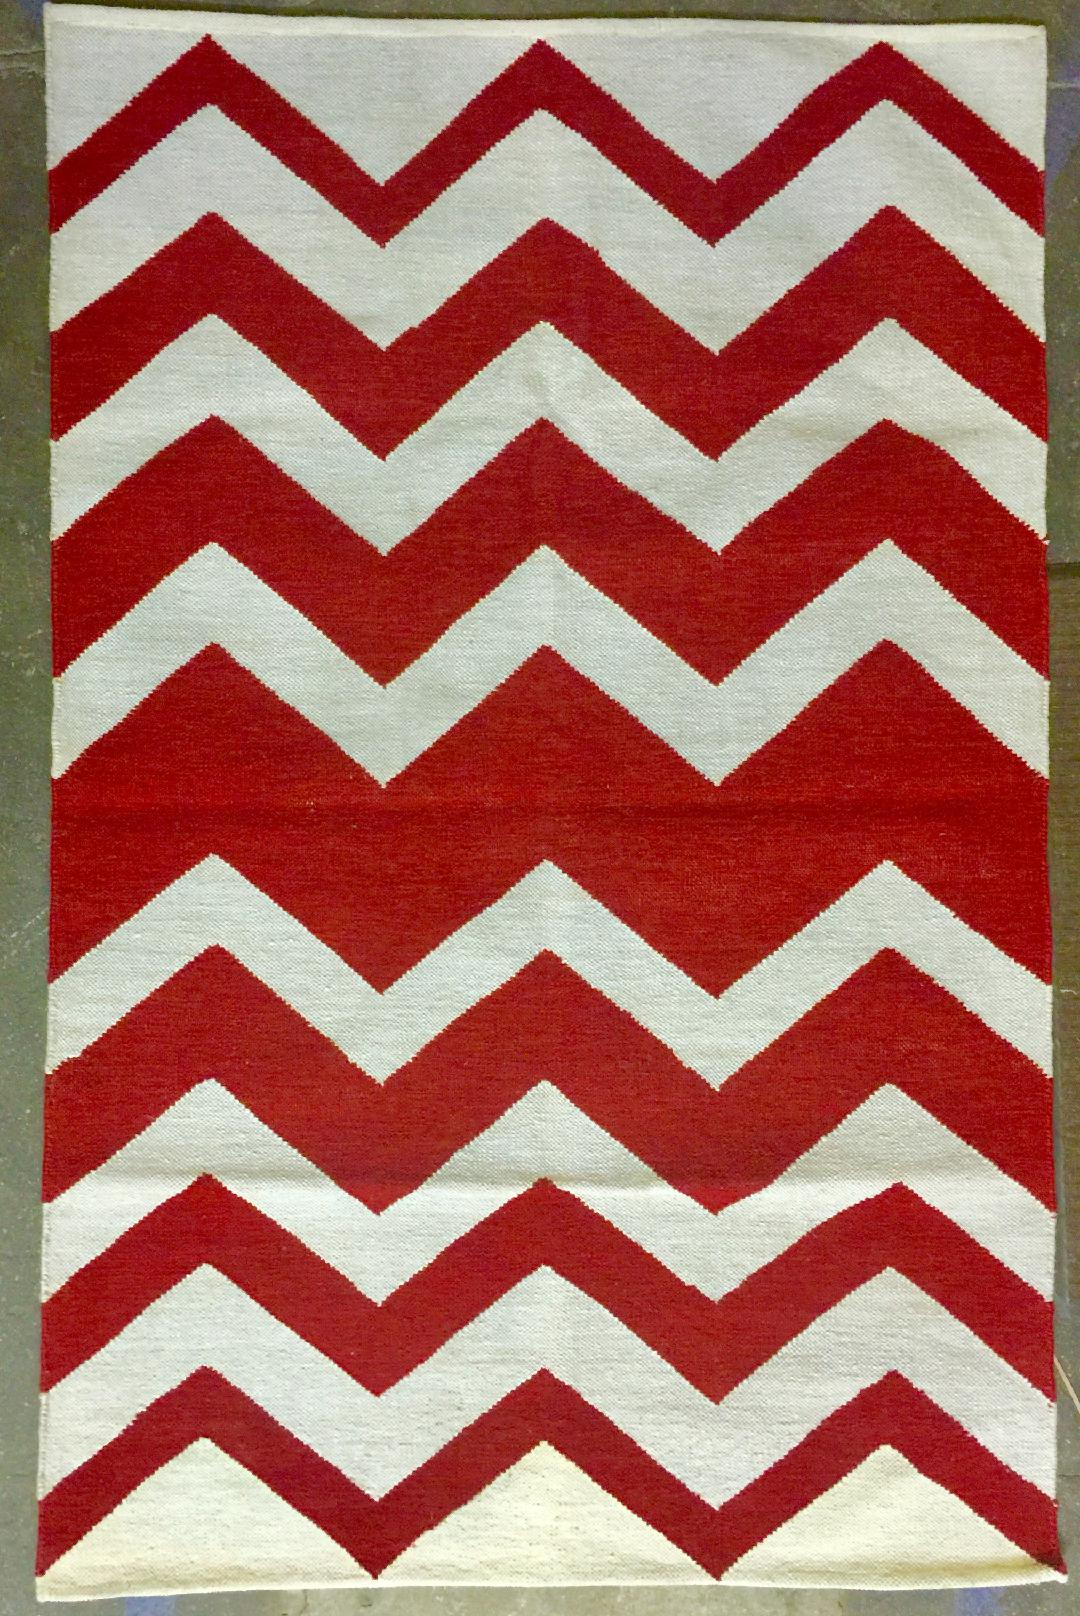 Indoor/Outdoor 14203 (4X6) handwoven polyurethane rug. SAVE 50% AT CHECKOUT WITH DISCOUNT CODE SAVE50